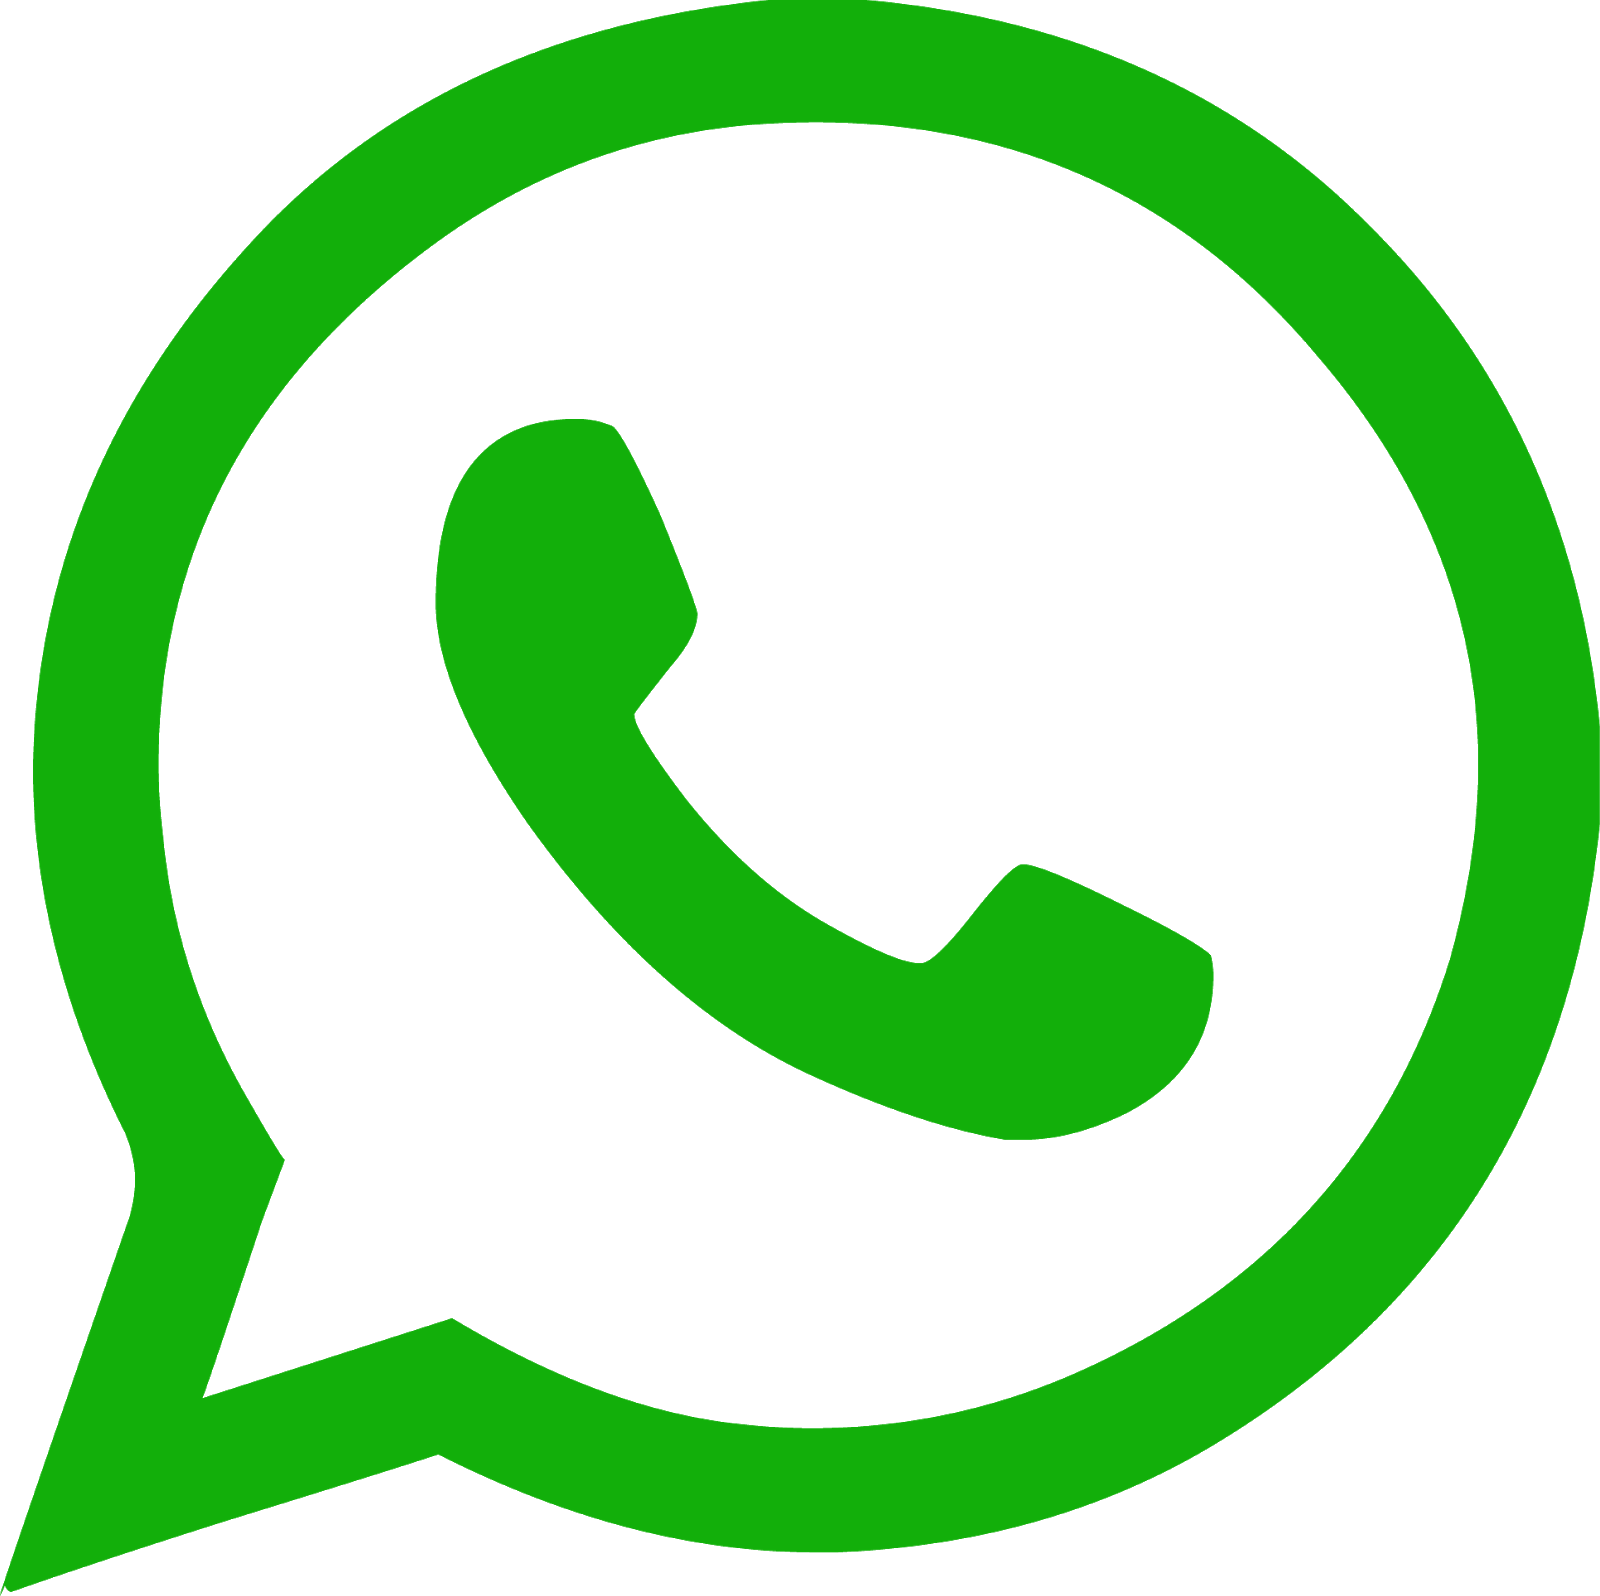 download icon whatsapp svg eps png psd ai vector color ...